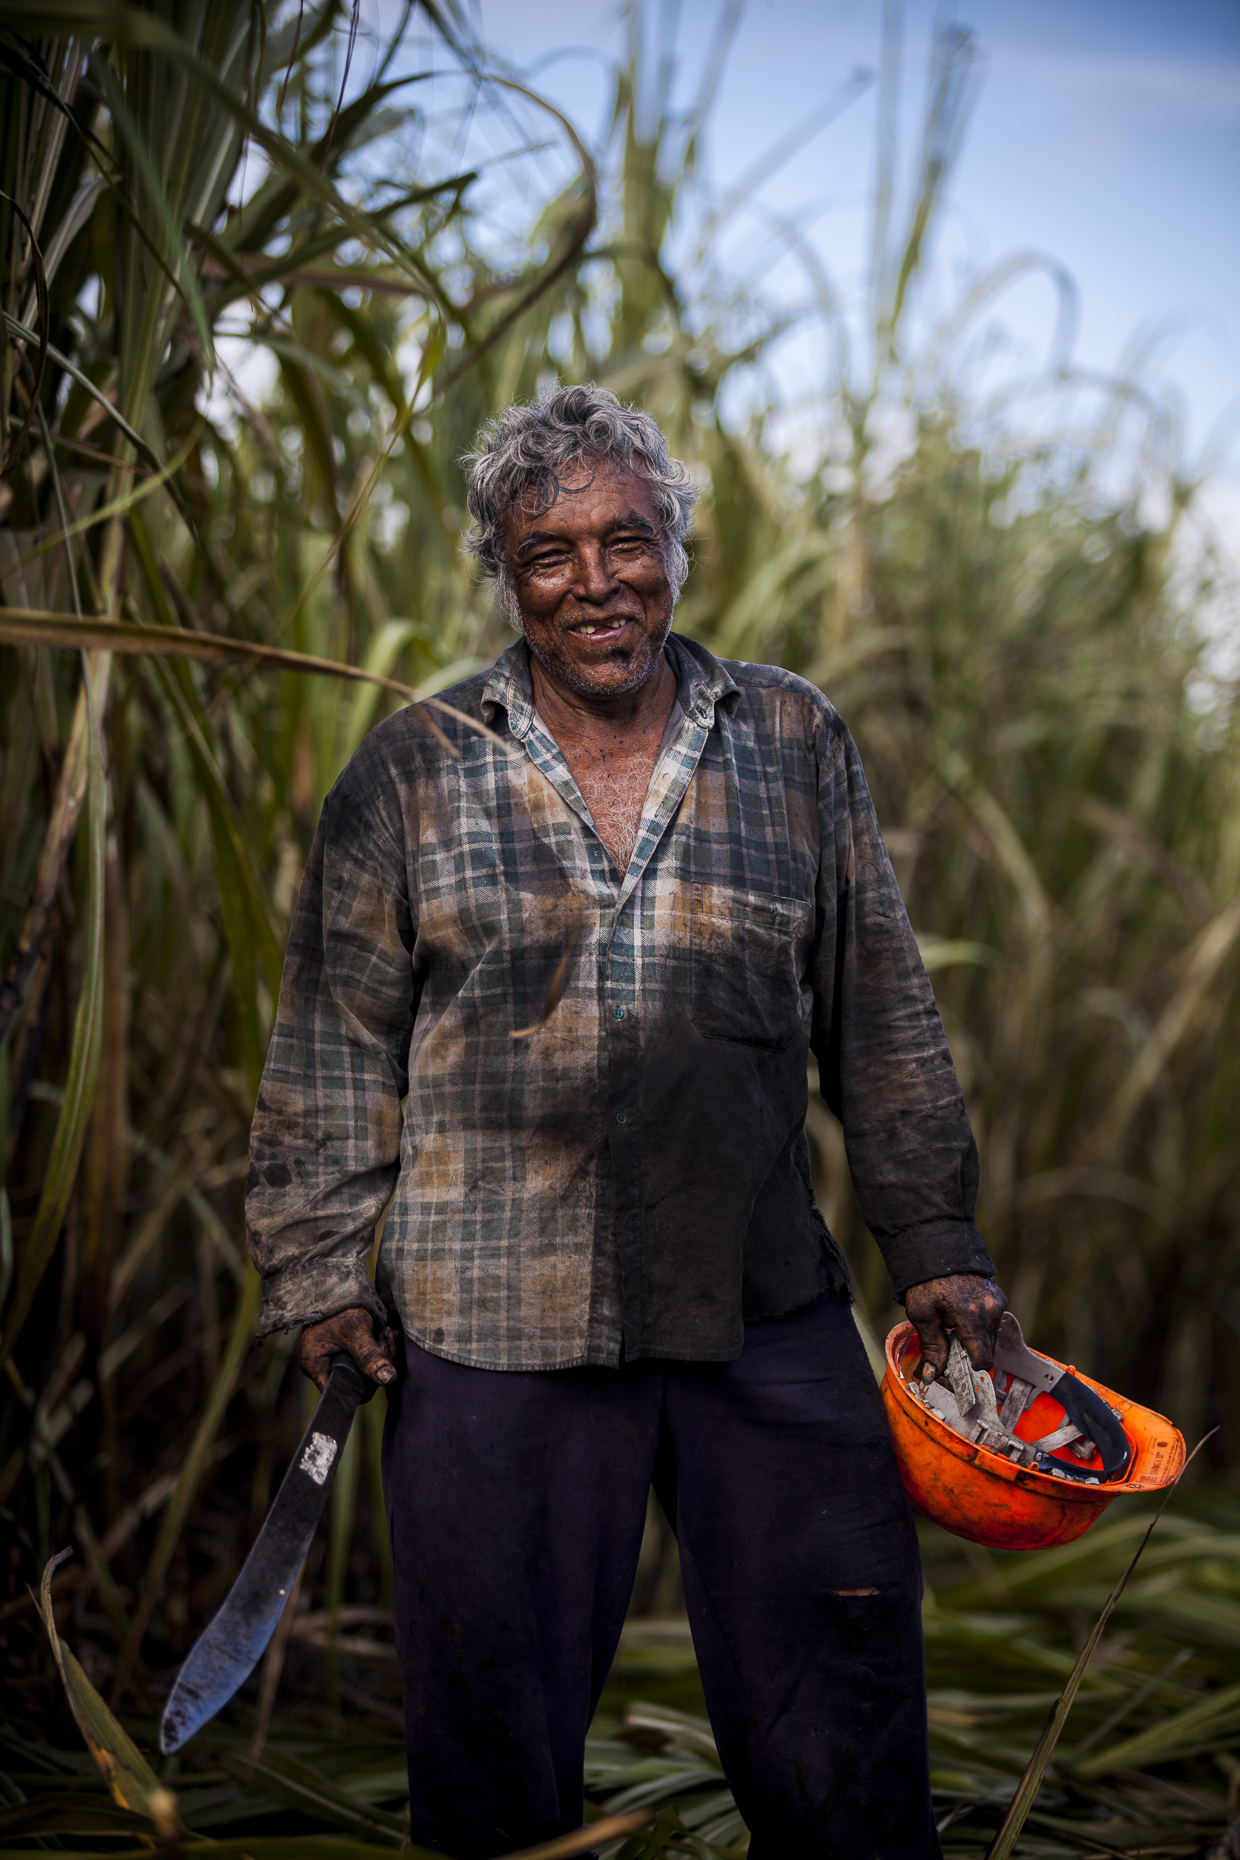 Sugar cane farmer, Belize